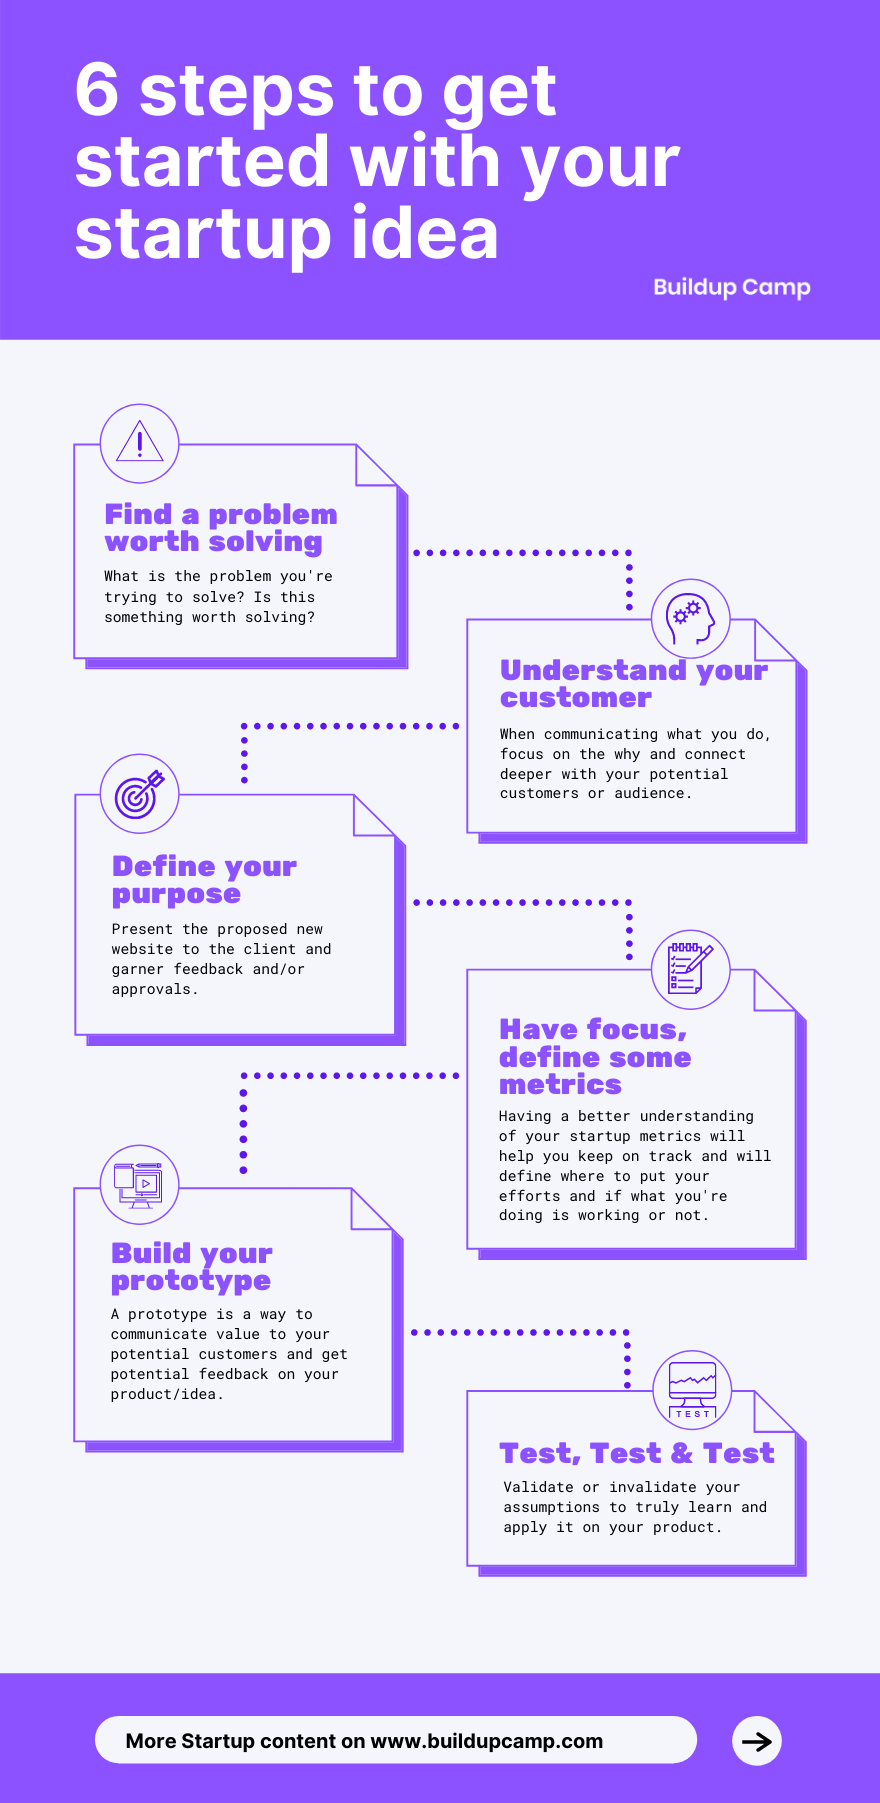 Get started with your startup idea